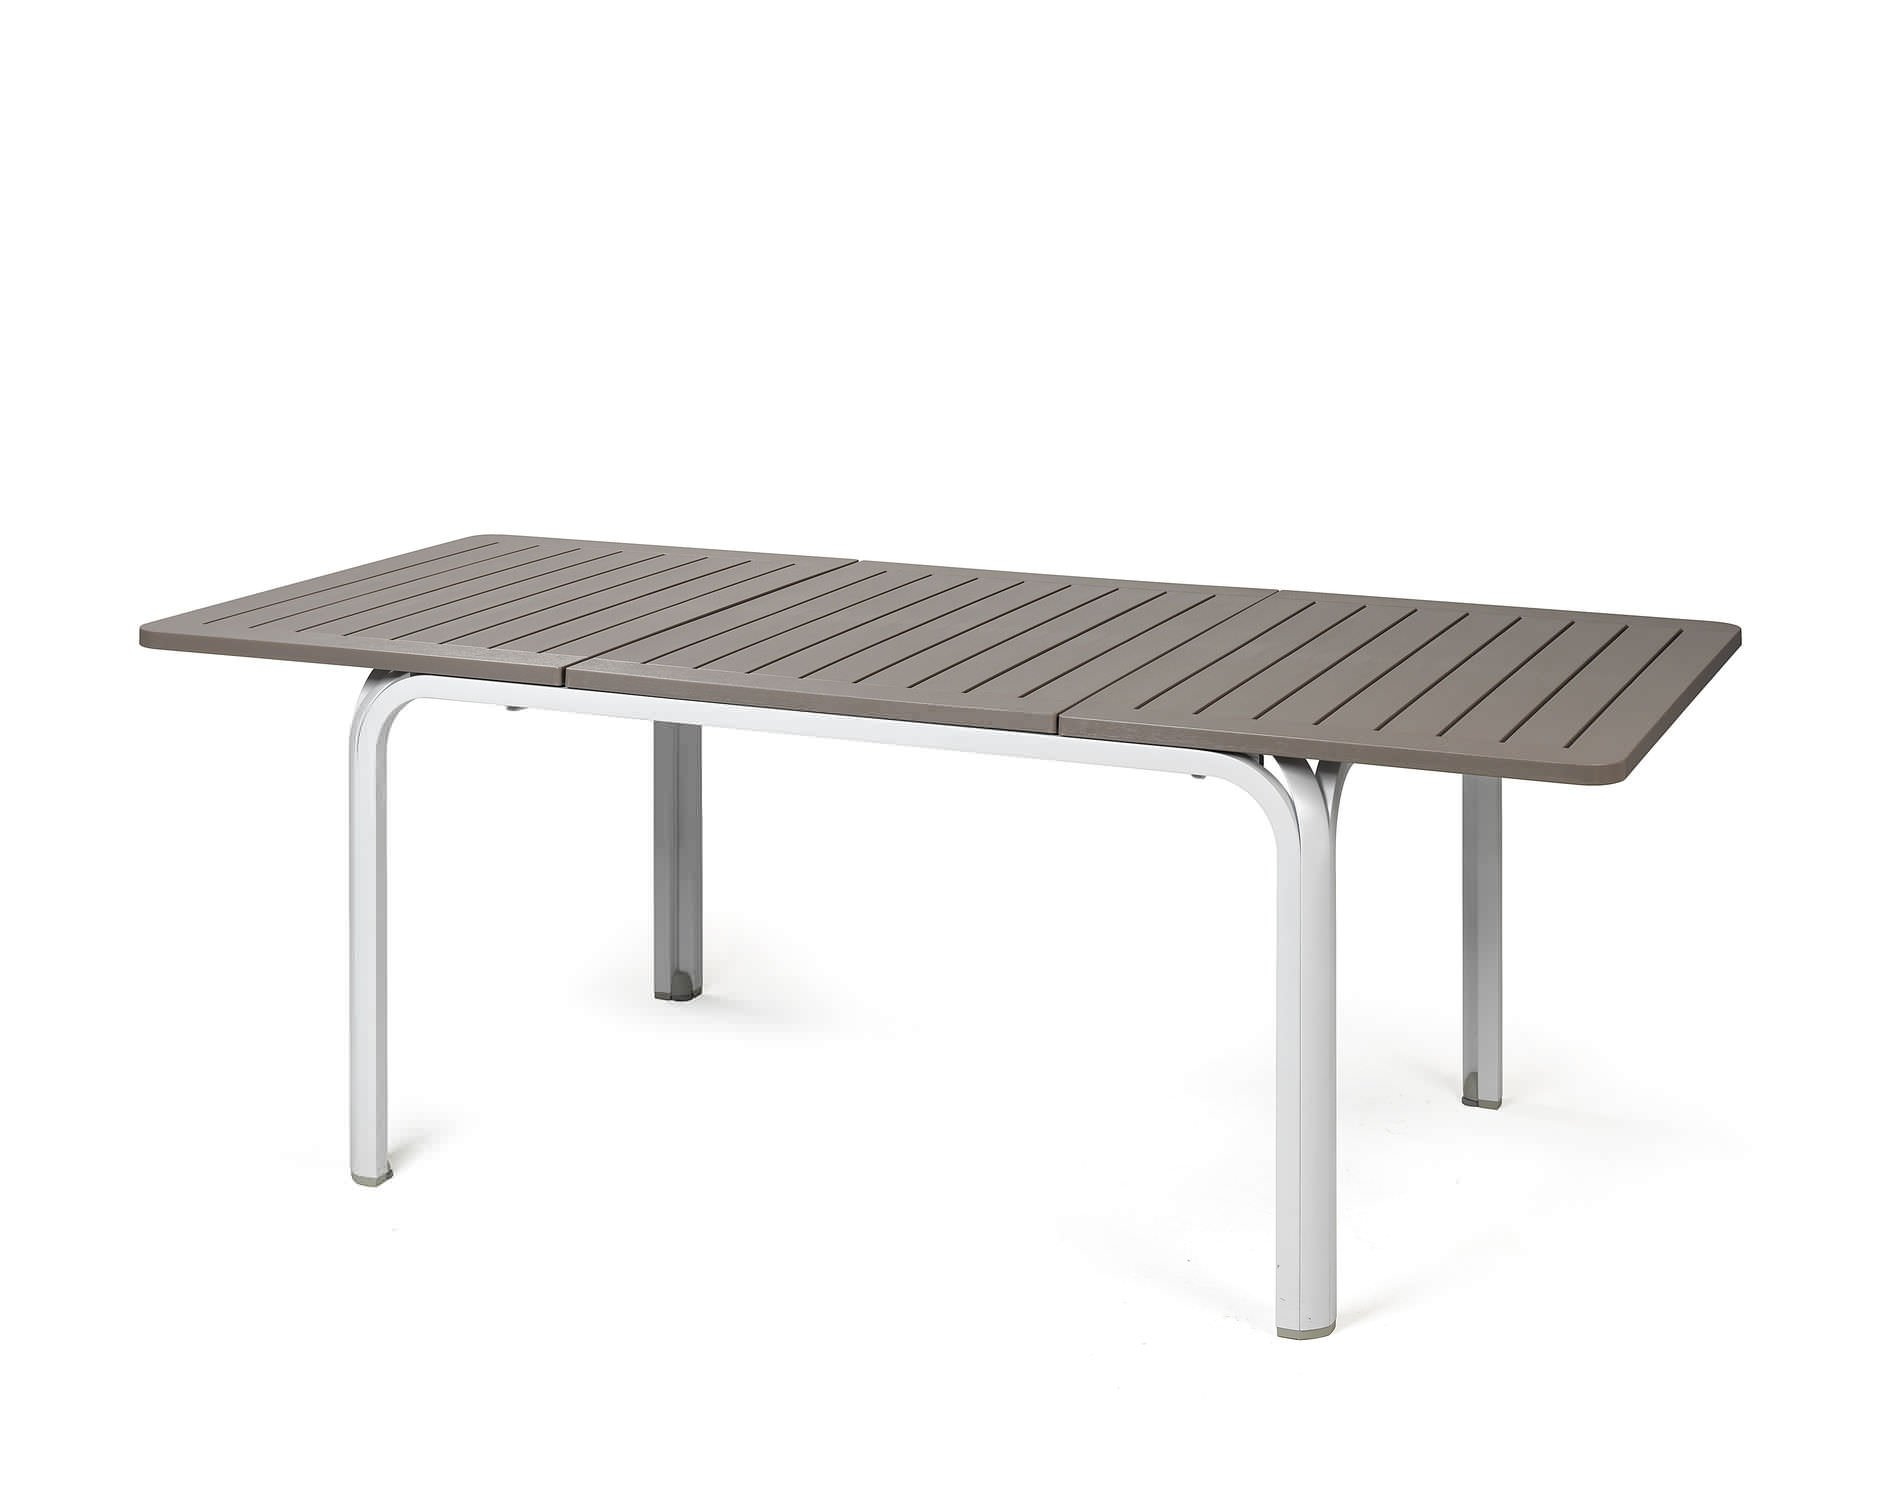 Alloro 140 Extendable Outdoor Dining Table ByDezign NZ Ltd : alloro outdoor dining table extended from www.bydezignfurniture.co.nz size 1897 x 1500 jpeg 66kB